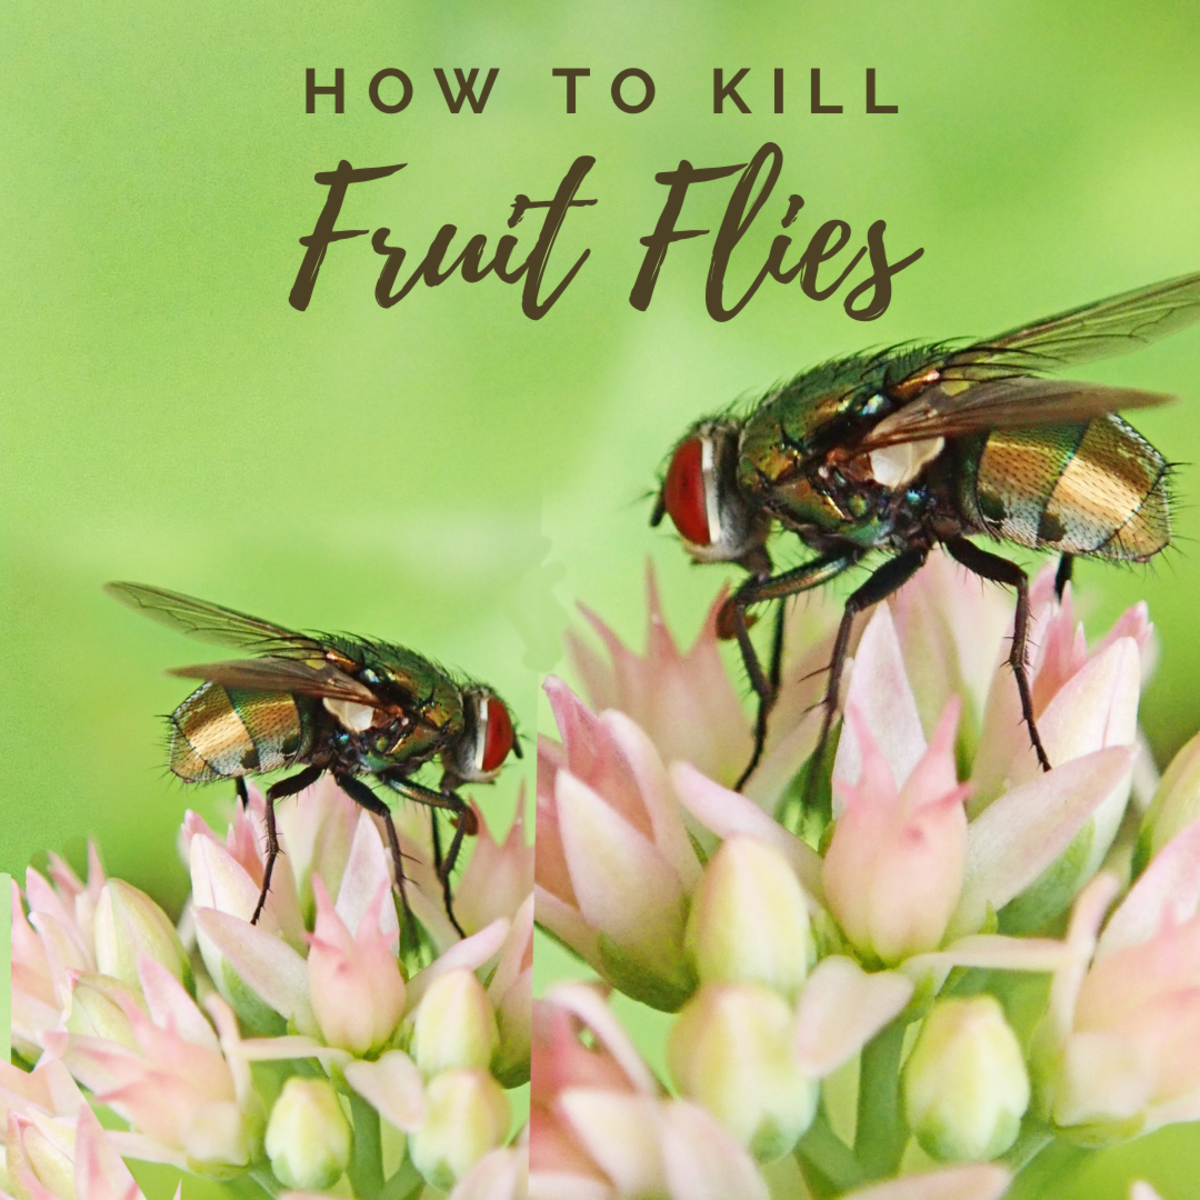 A simple and inexpensive way to get rid of fruit flies